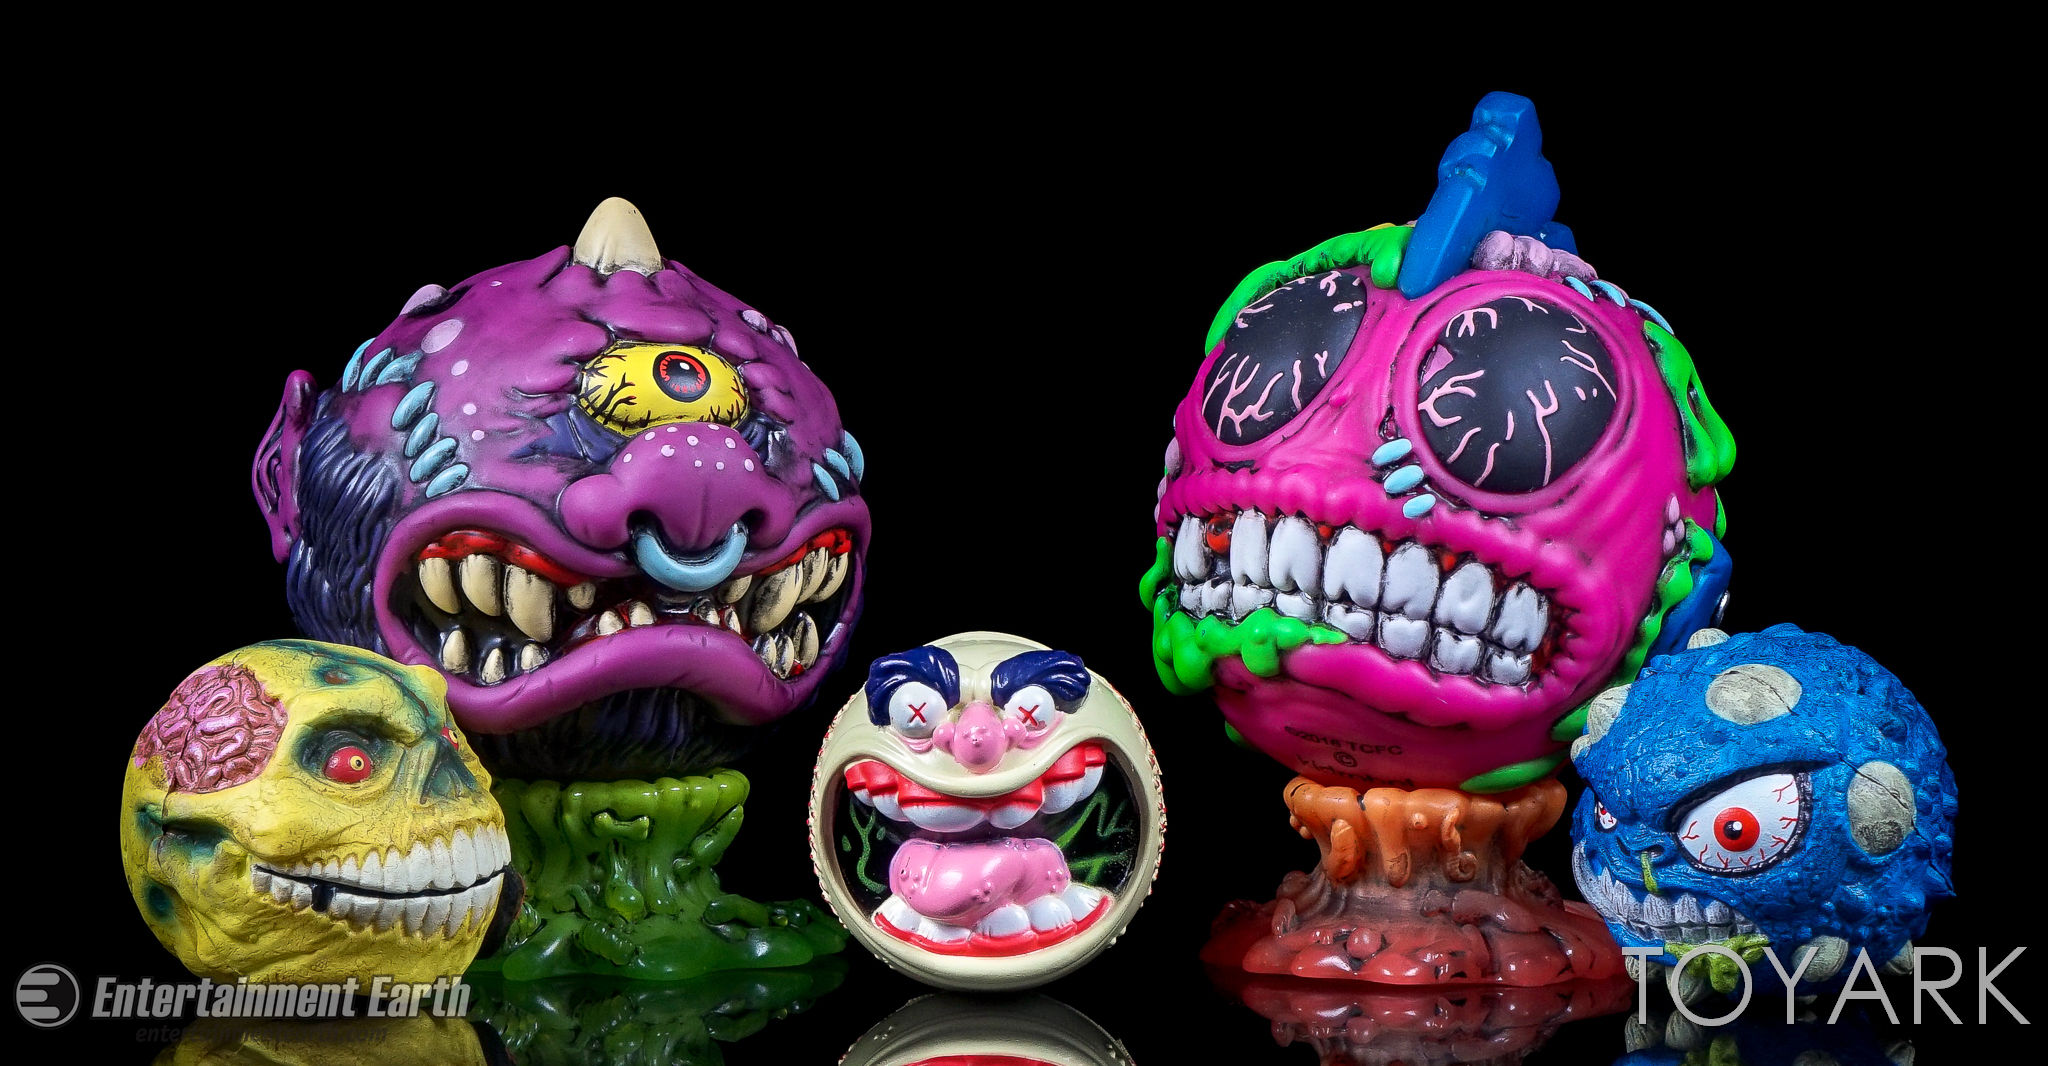 http://news.toyark.com/wp-content/uploads/sites/4/2017/02/Madballs-6-Inch-Medium-Figures-033.jpg